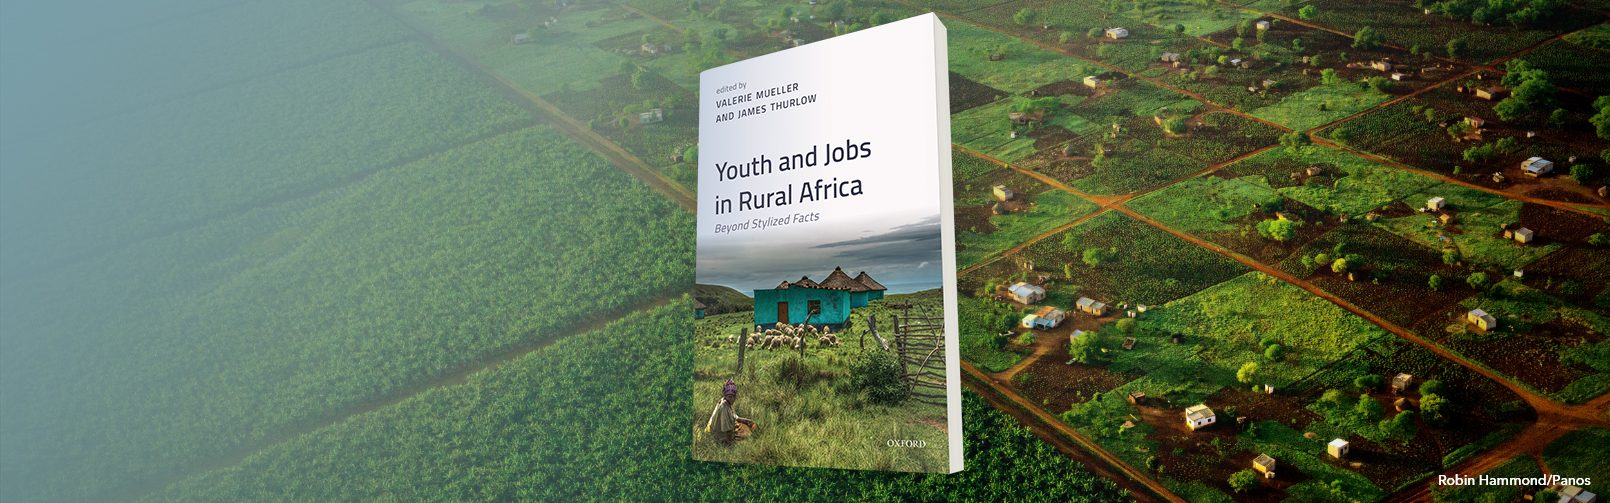 Youth and Jobs in Rural Africa: Beyond Stylized Facts